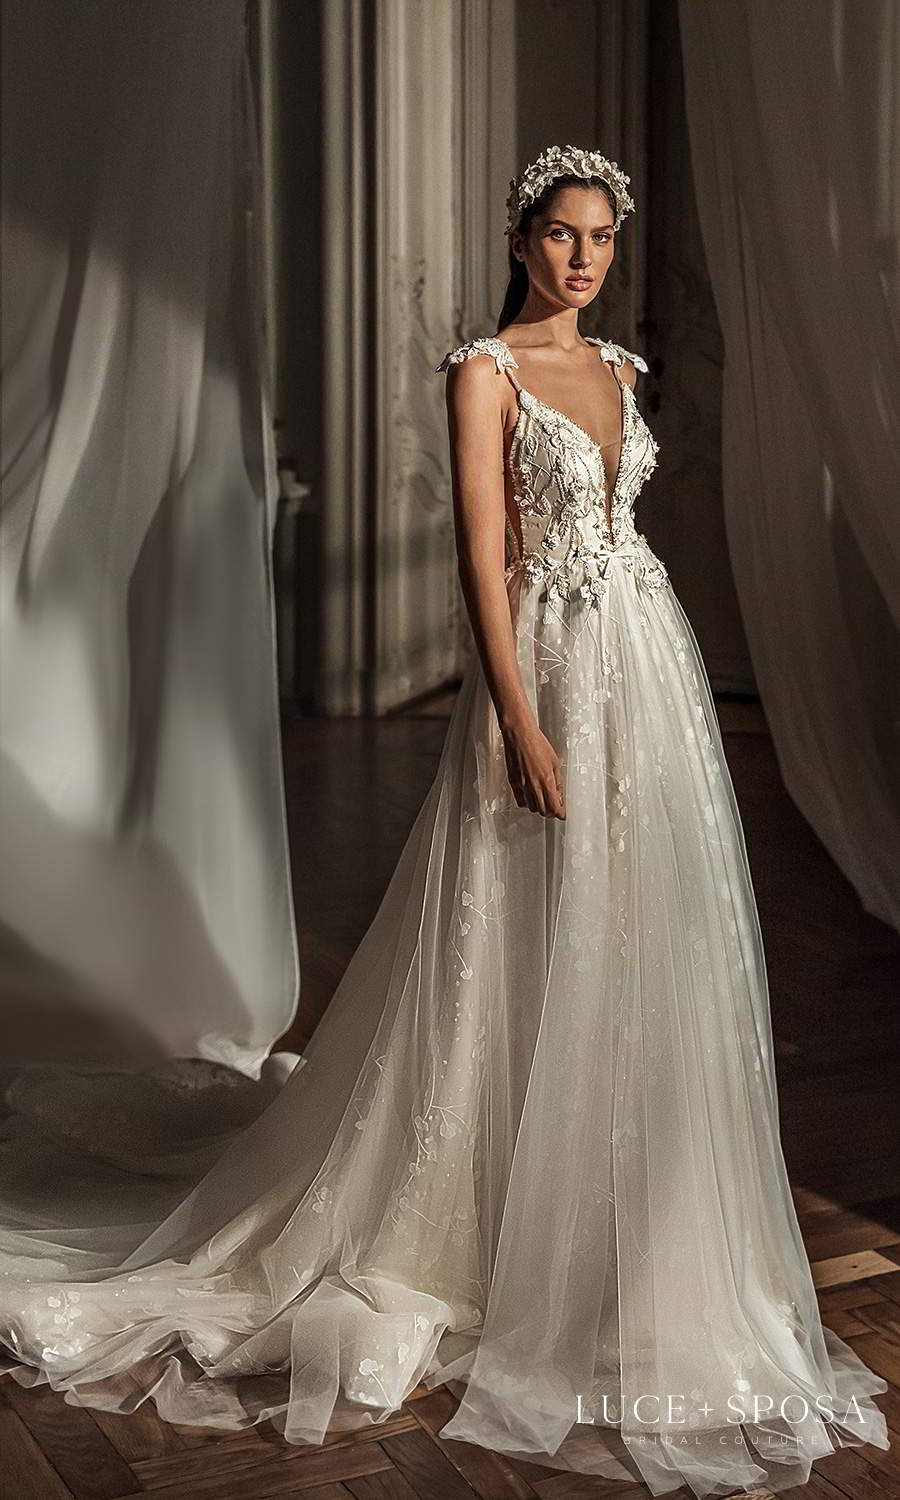 luce sposa 2021 shades of couture bridal mini cap sleeves straps plunging v neckline heavily embellished bodice a line ball gown wedding dress cathedral train (kimberly) mv